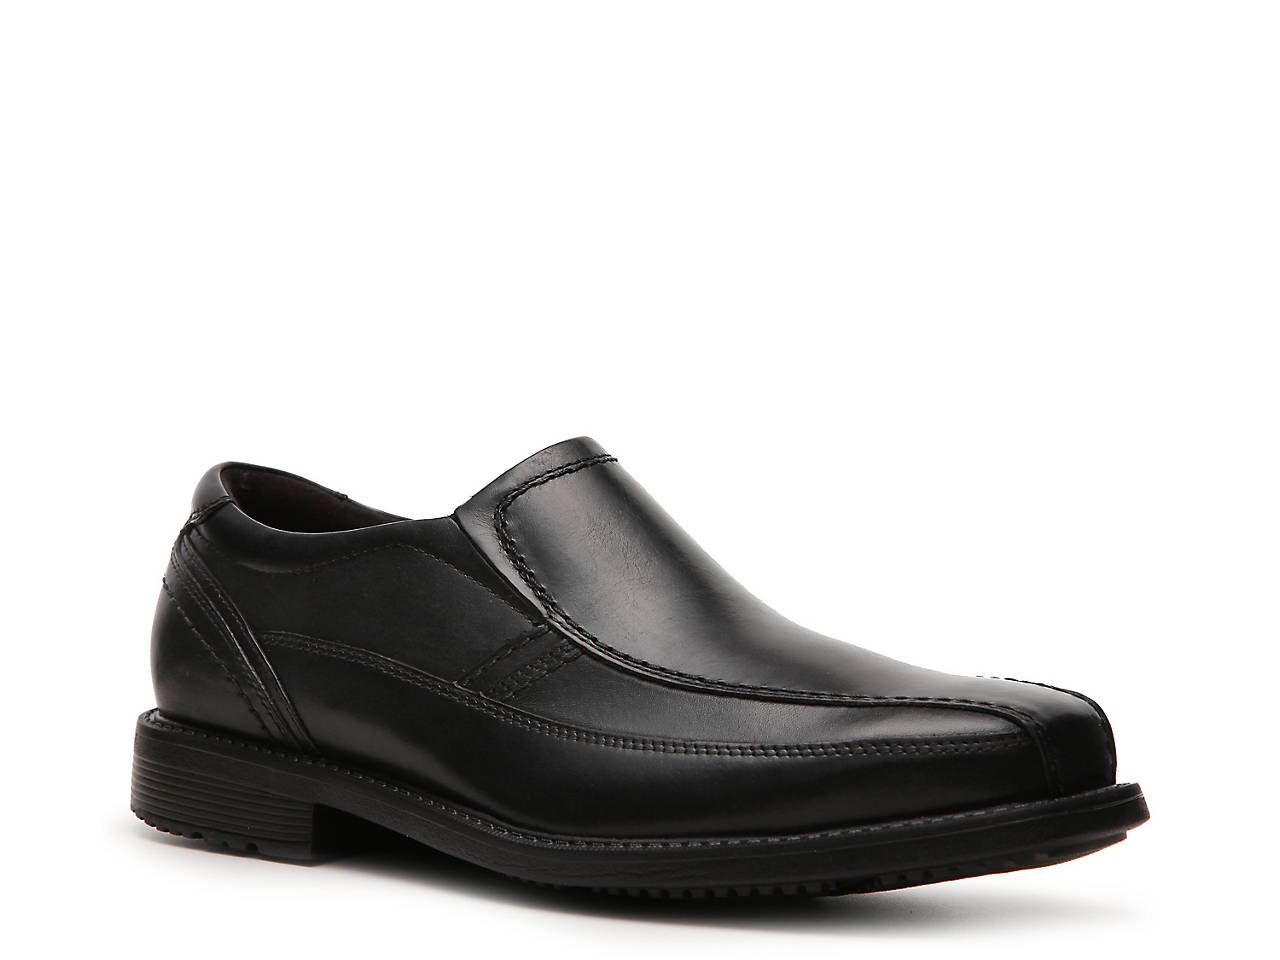 bfcda33e10d0 Rockport SL2 Slip-On Men s Shoes